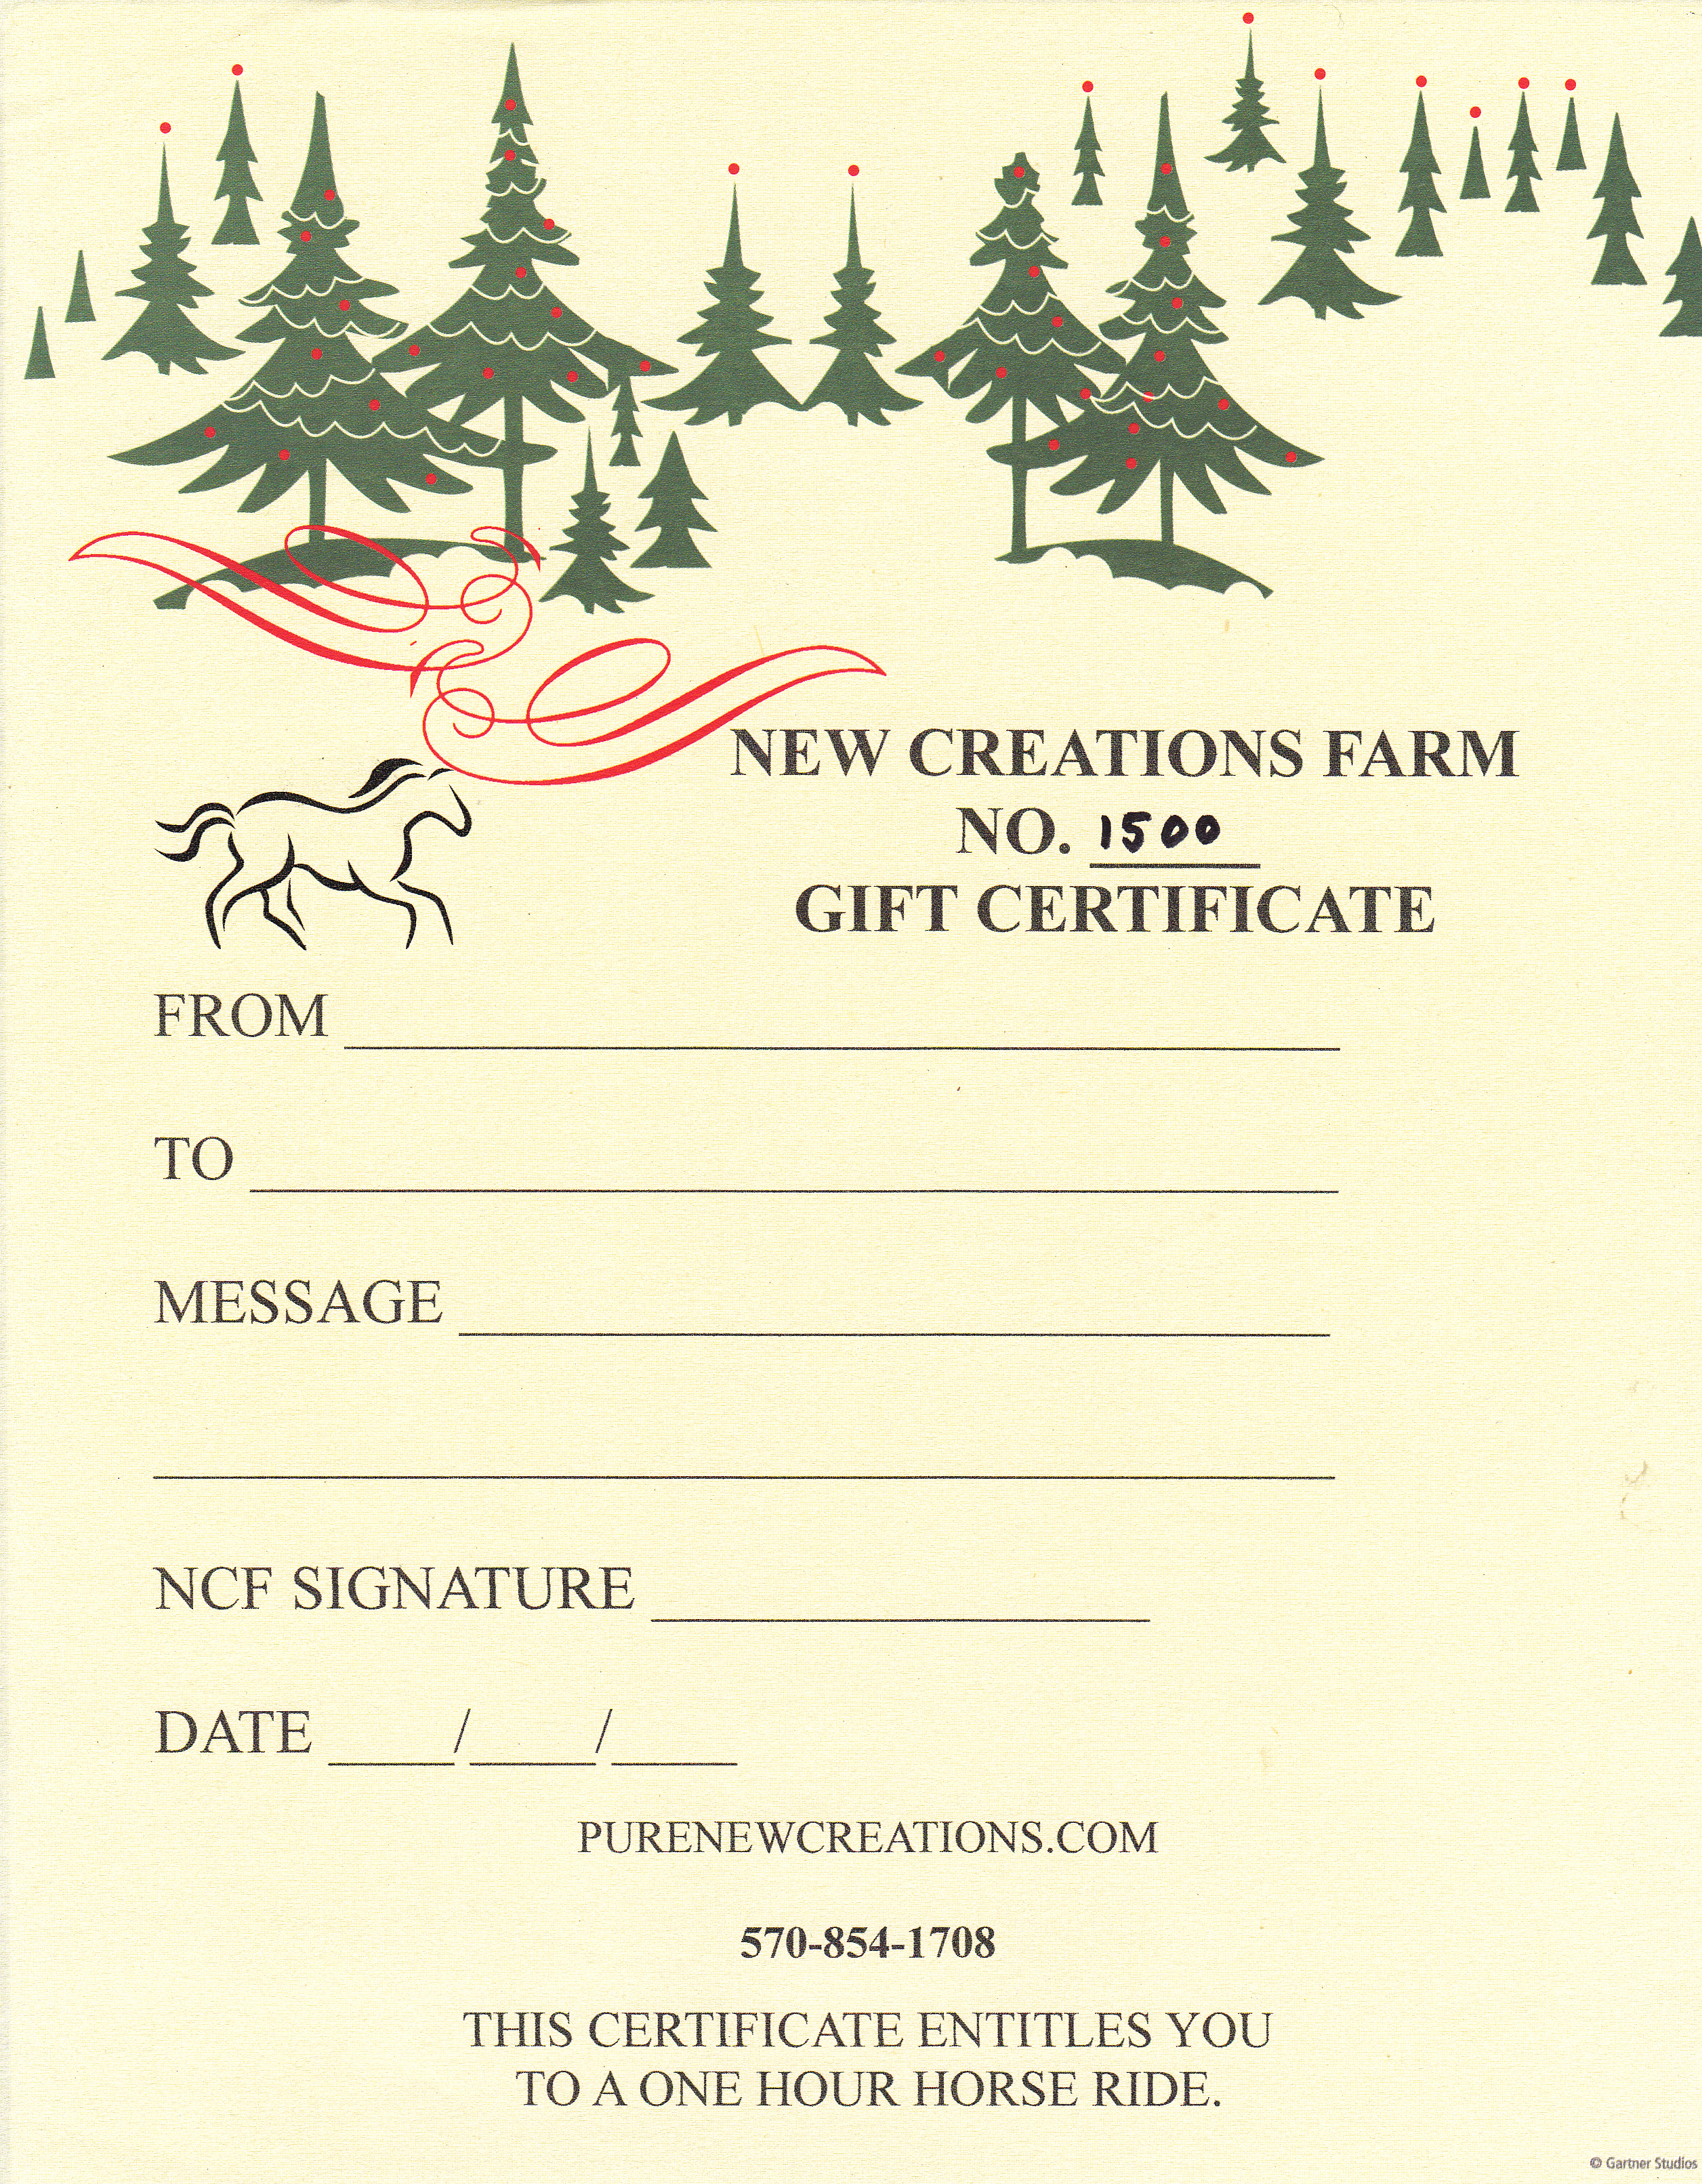 horseback riding lesson gift certificate template - horseback riding gifts gift ftempo